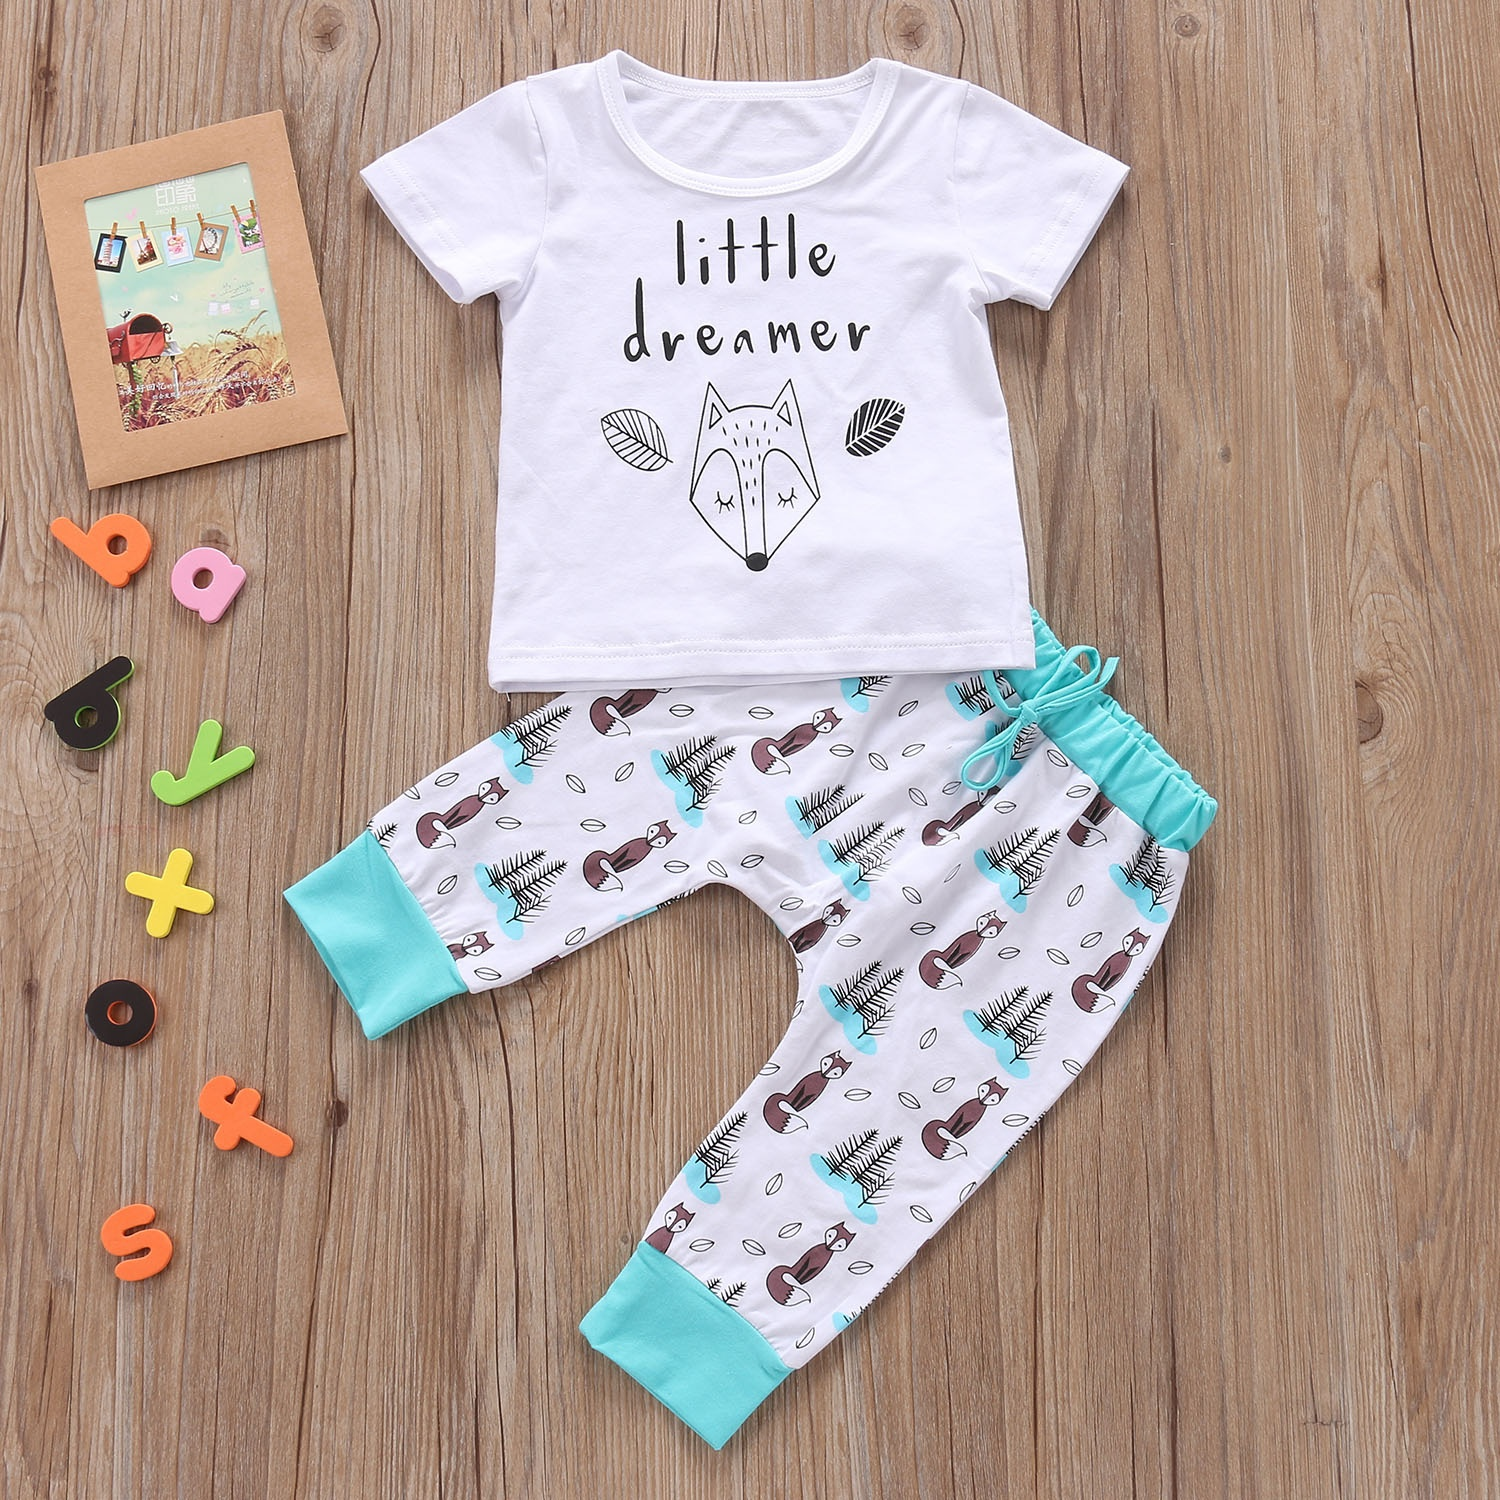 Passbey Unisex Tokyo Ghoul T-shirt Trousers Suit Baby Boy Girl Clothes T-Shirt Tops+Pants Tracksuit Outfits Set